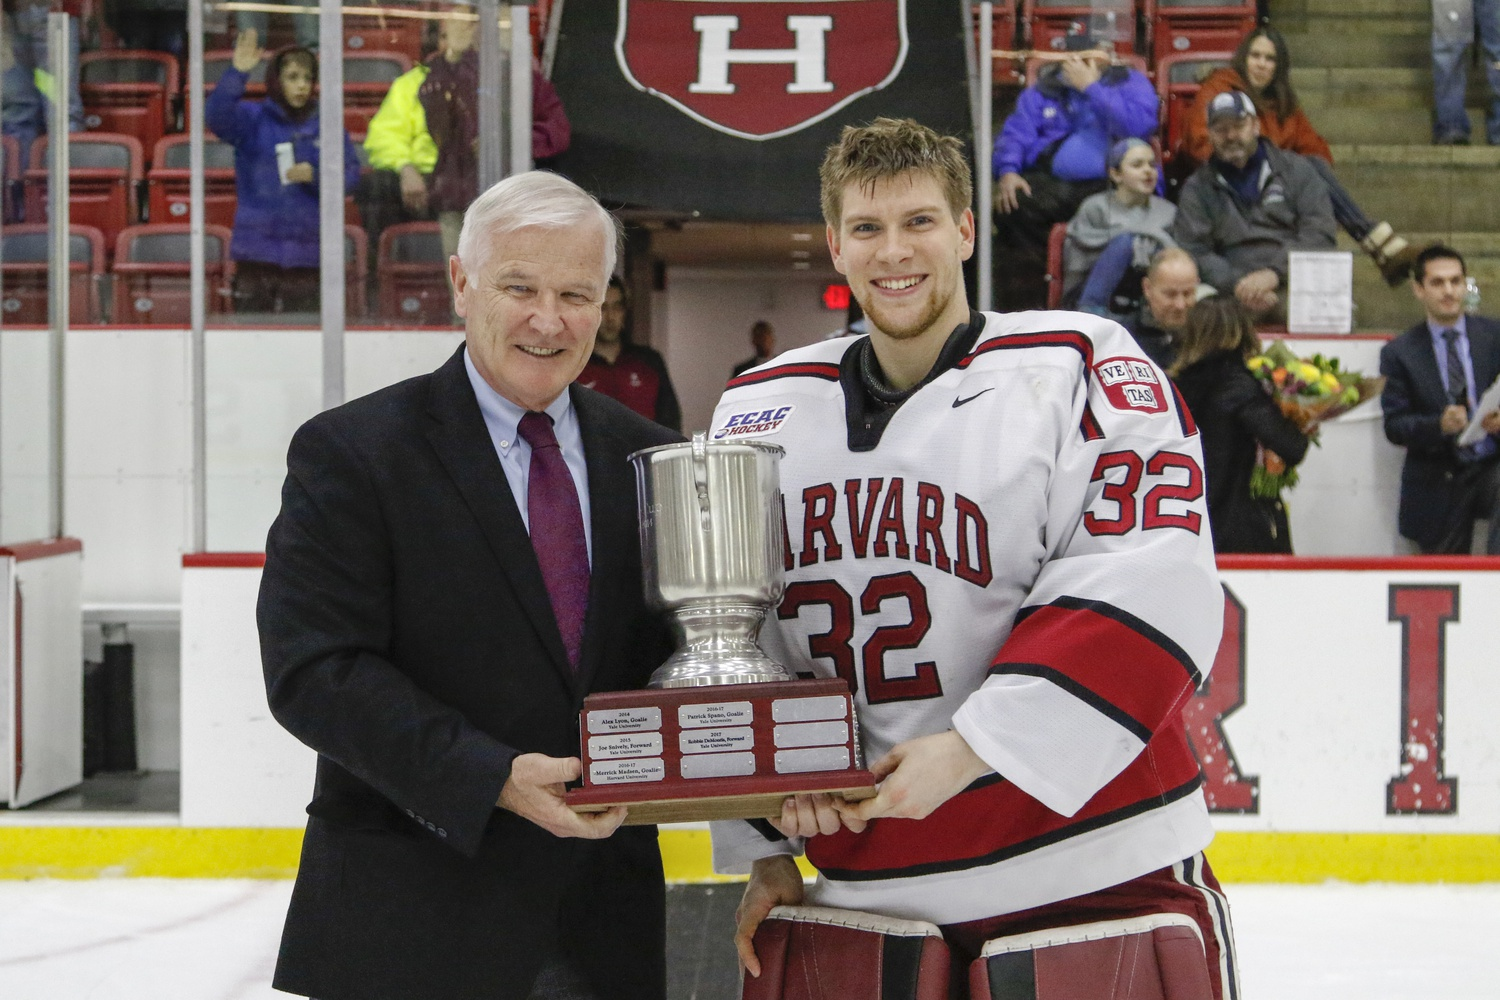 Gornet's performance won him the Tim Taylor Cup, named for the late Tim Taylor '63, who played for the Crimson and went on to coach the Bulldogs.